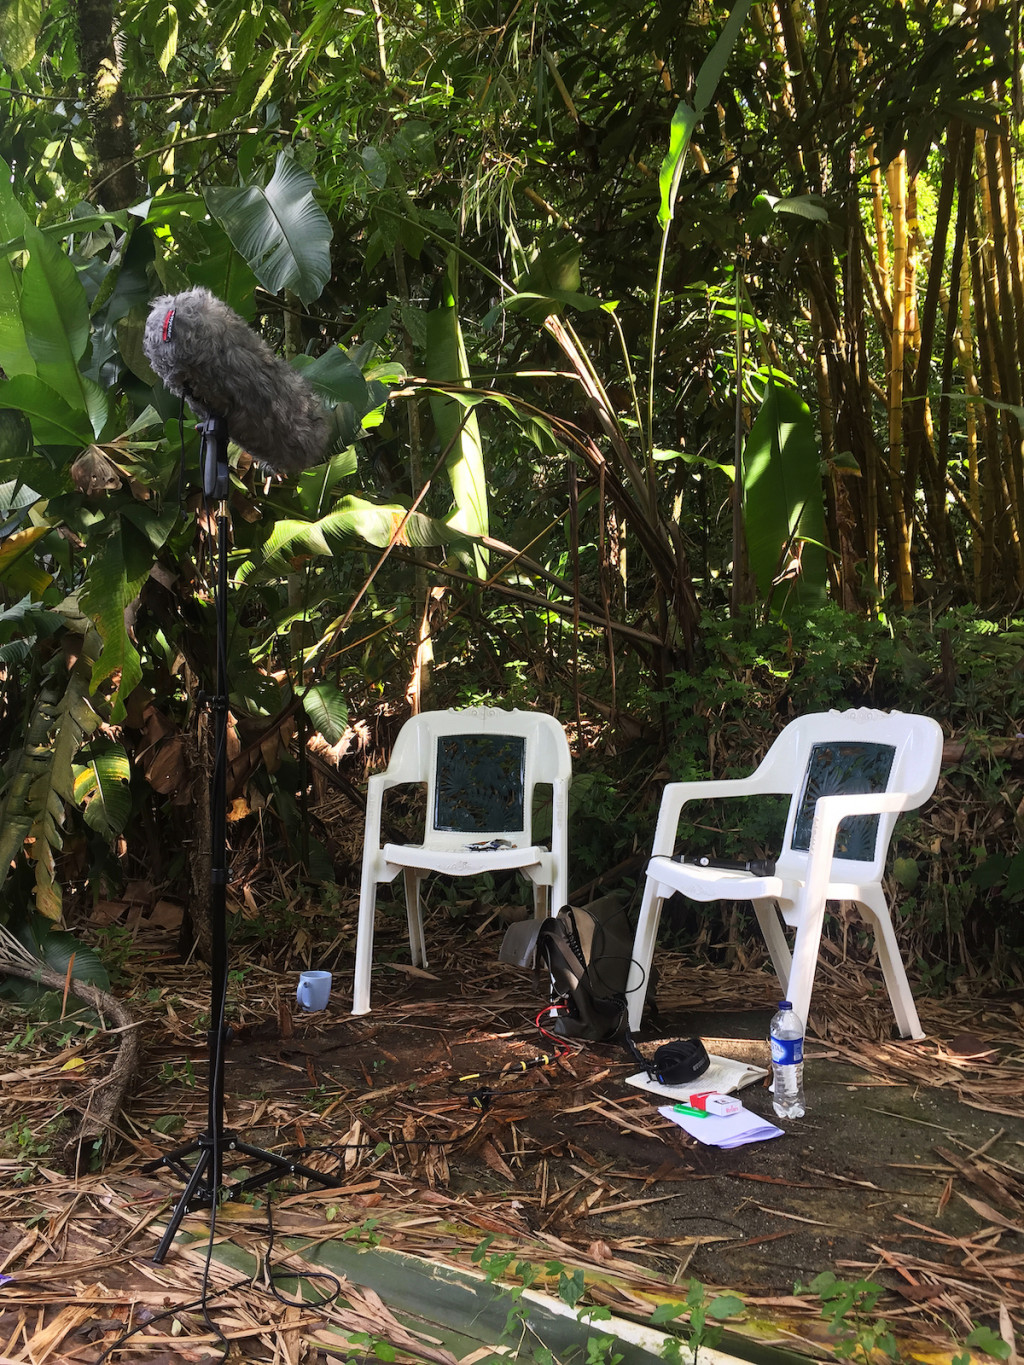 Interview setting with a person who was suspected of involvement in RARA, Quibdó, Colombia, June 2017.